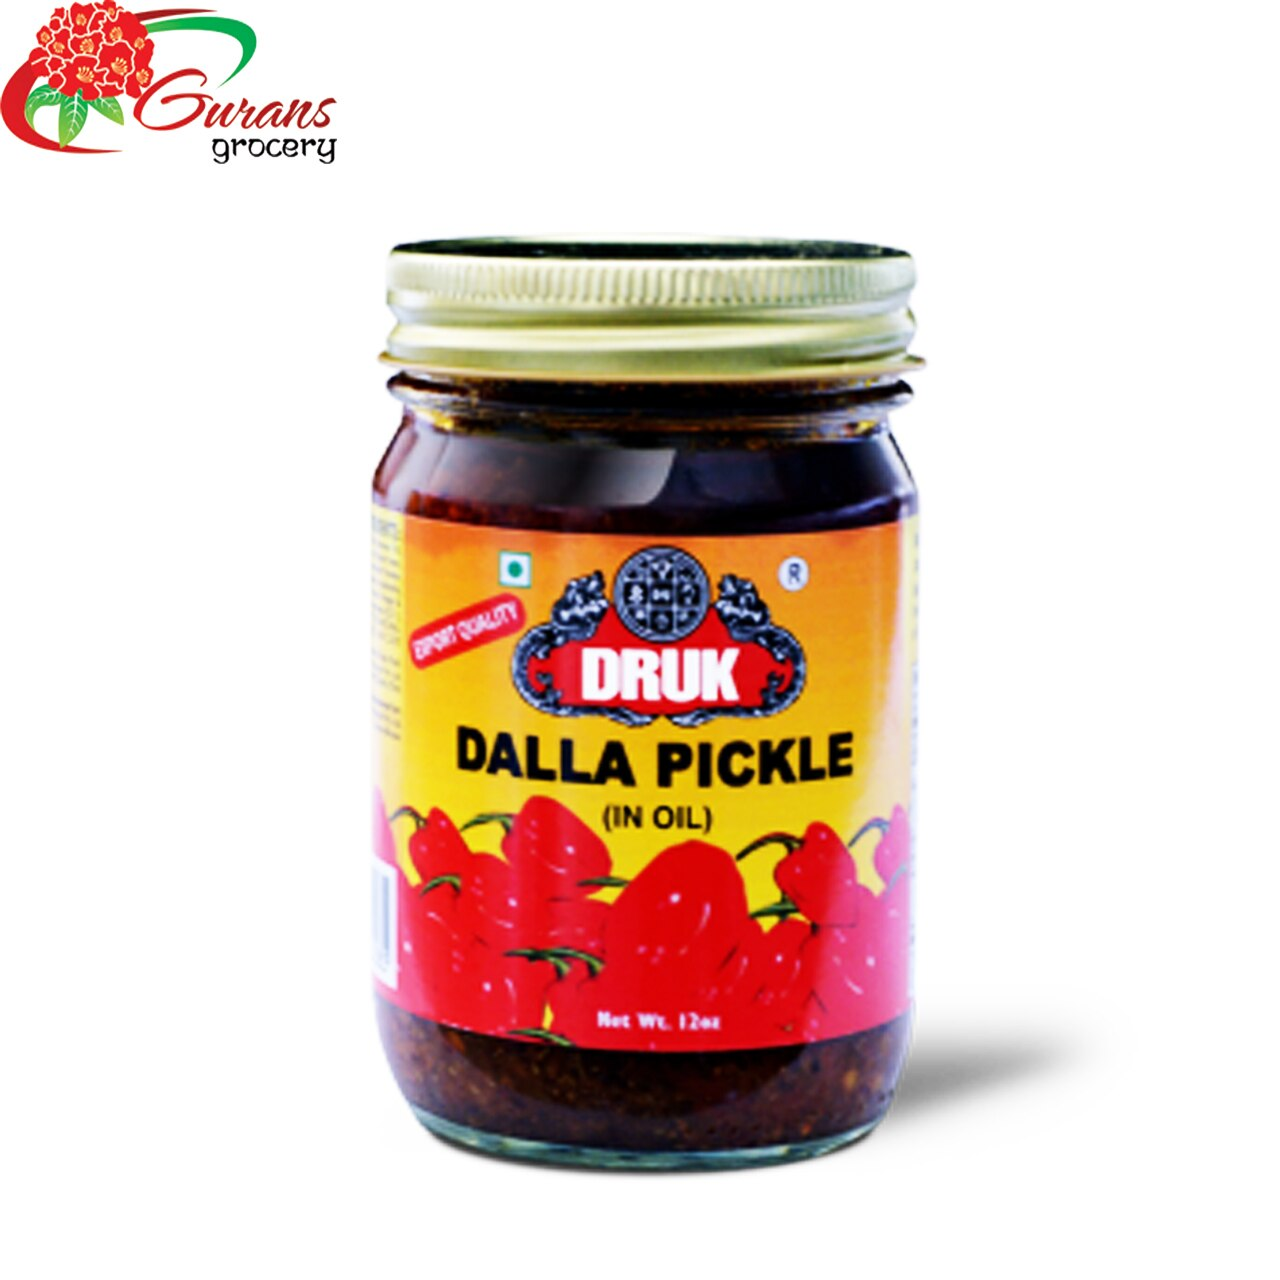 Druk Dalla pickle 400gm